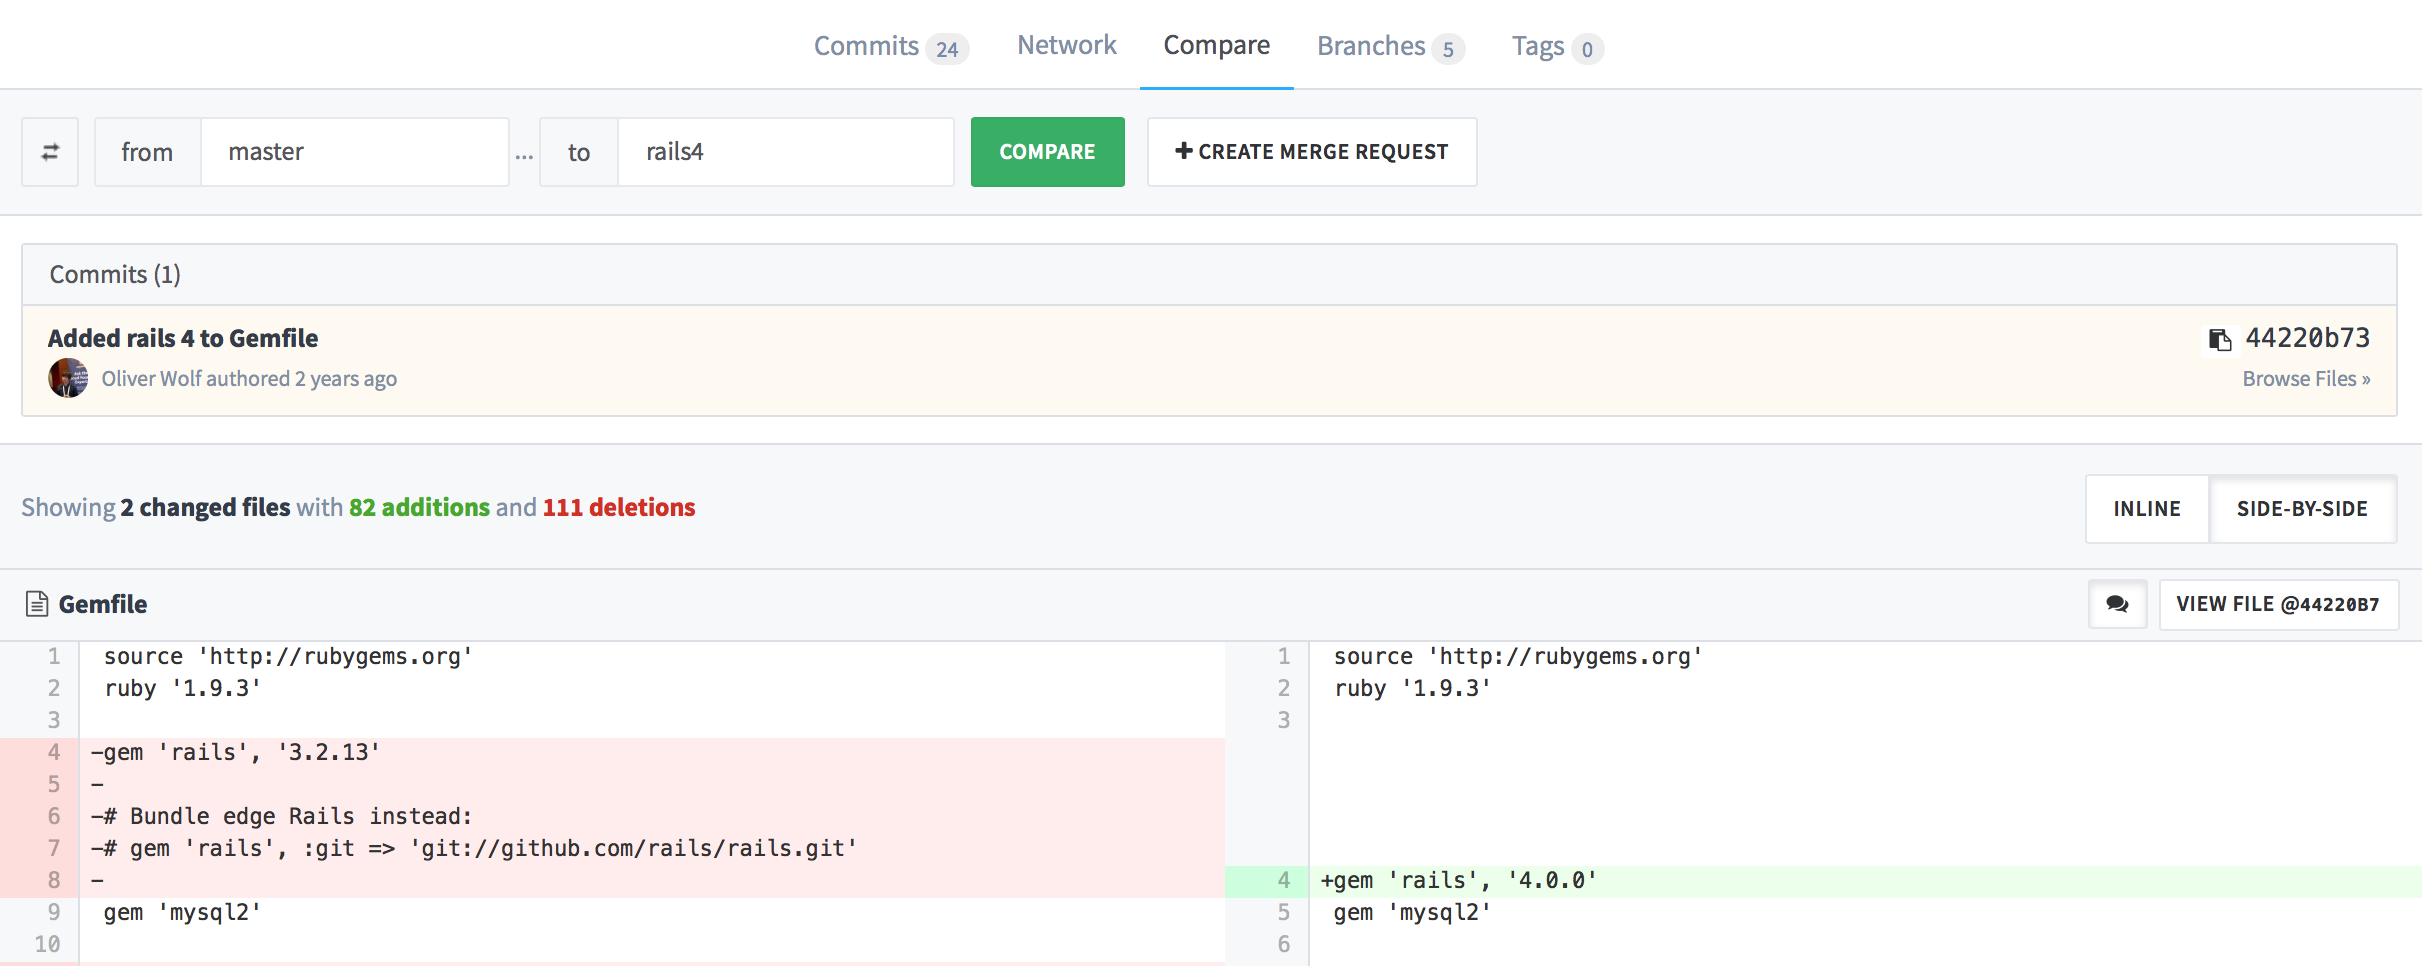 anynines_gitlab_commits_compare_side_by_side